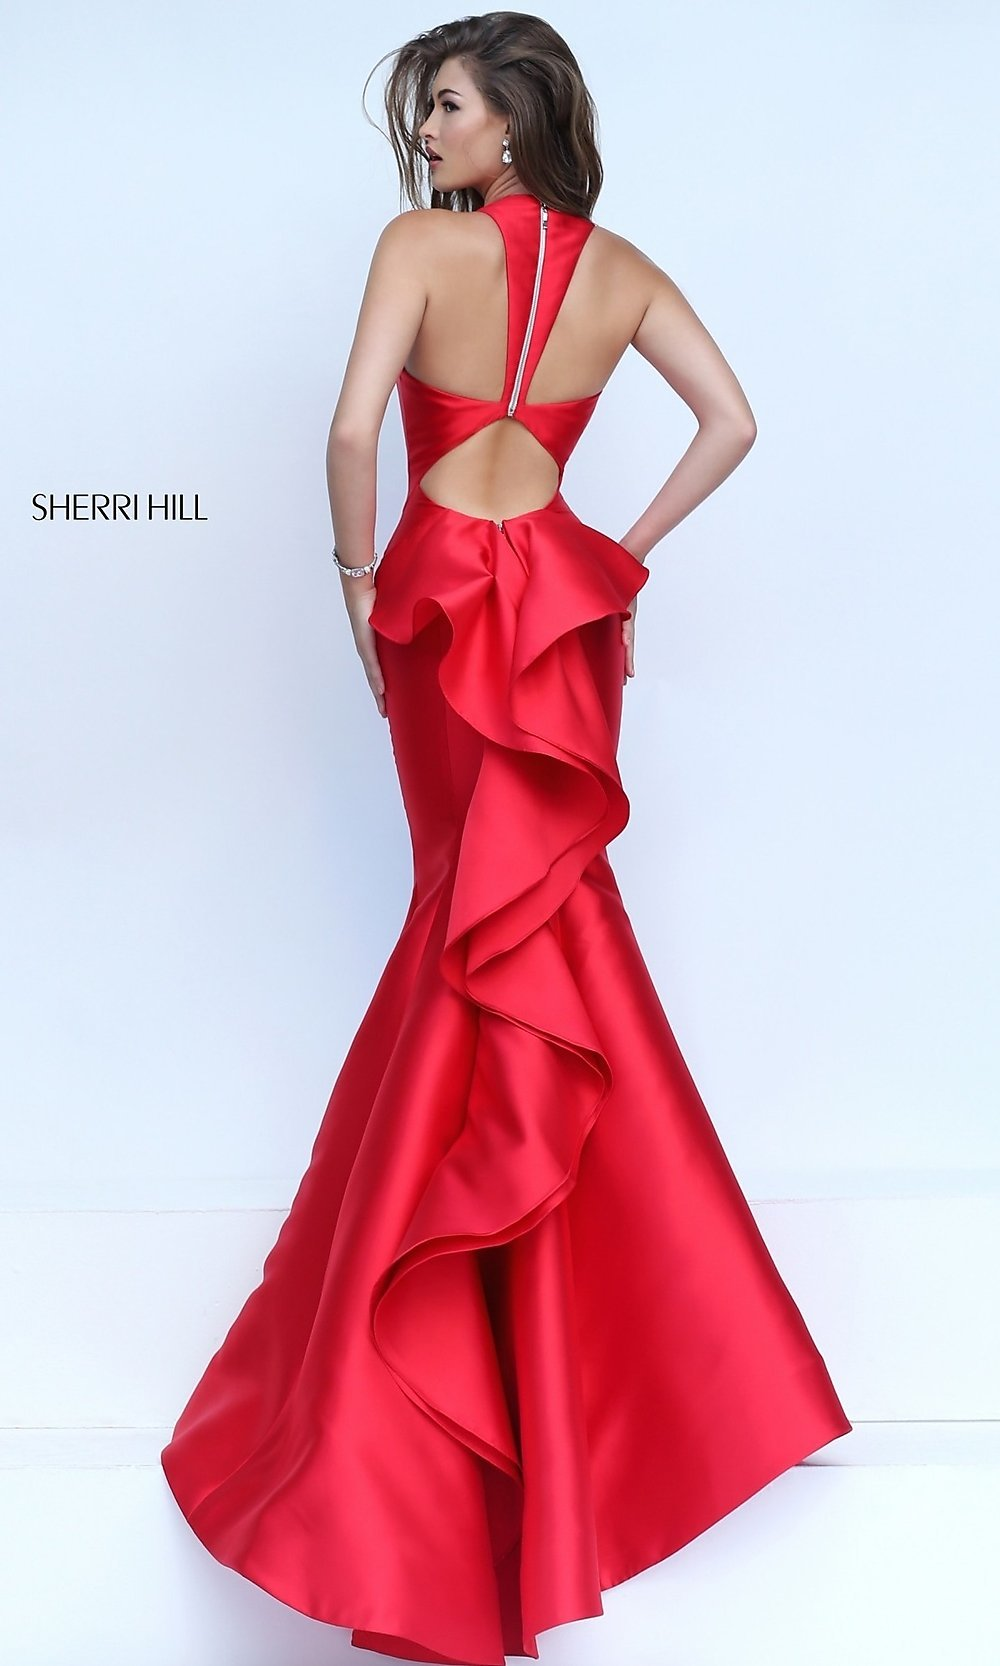 V Neck Mermaid Prom Dress Promgirl